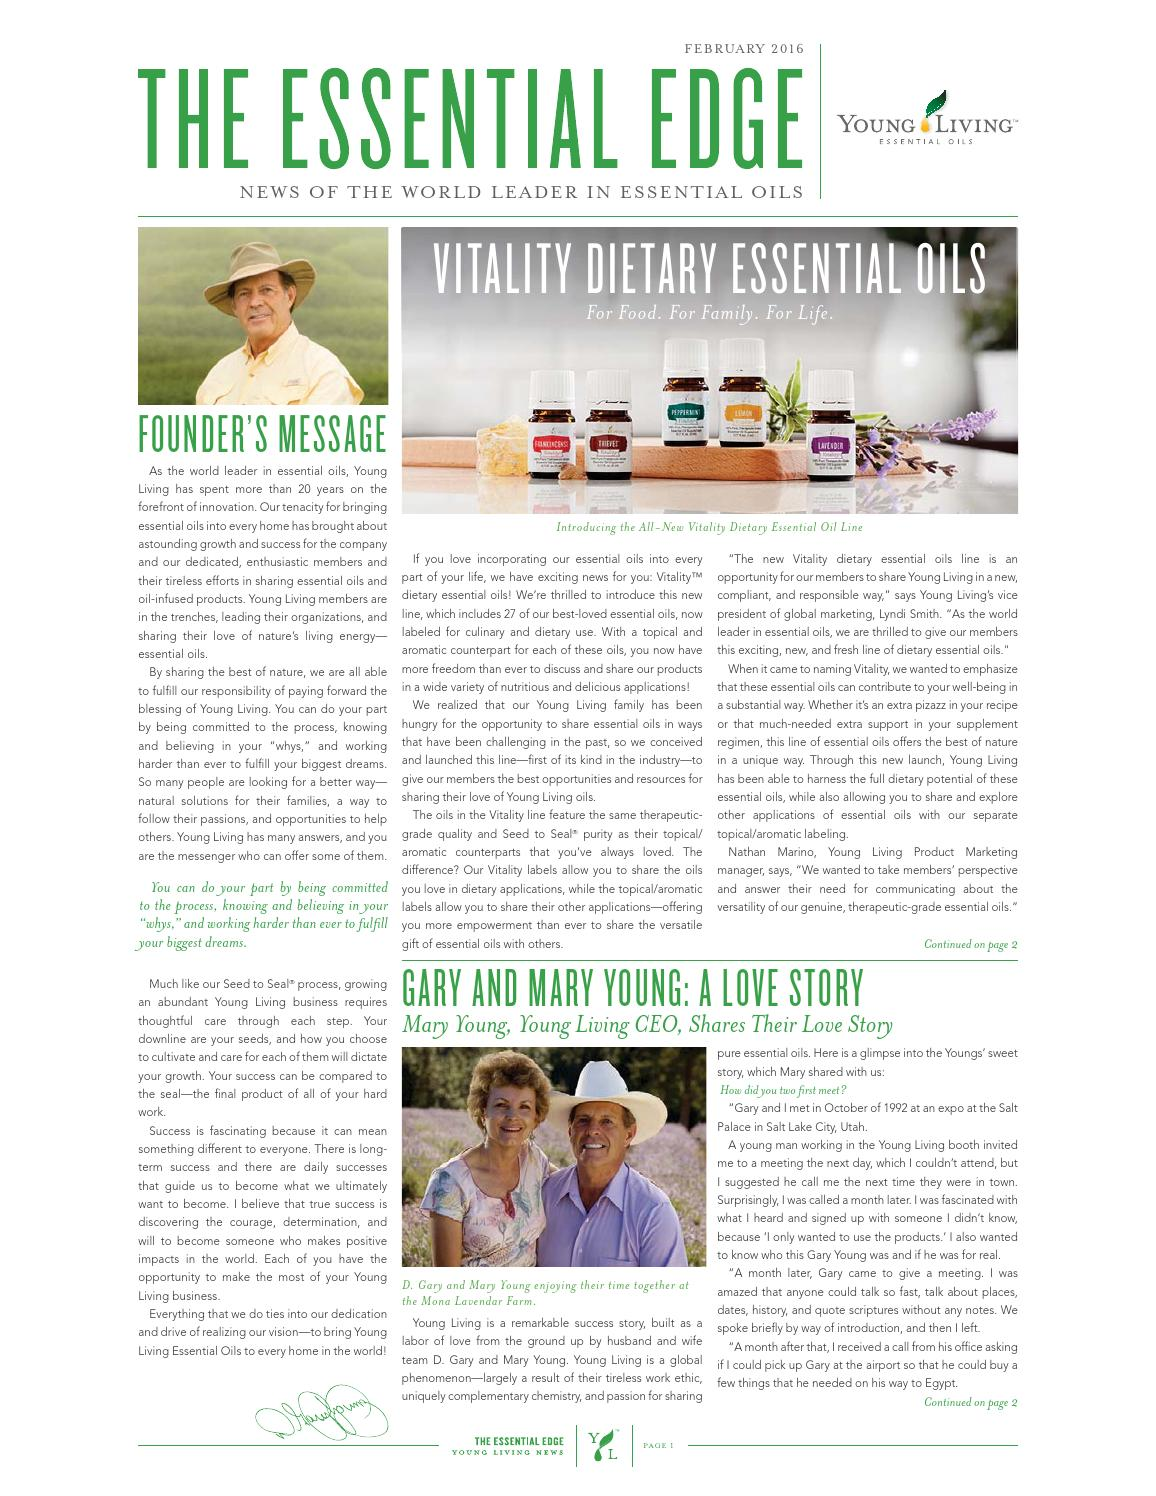 en_us-ee-vol-6-iss-2 by Young Living Essential Oils - issuu